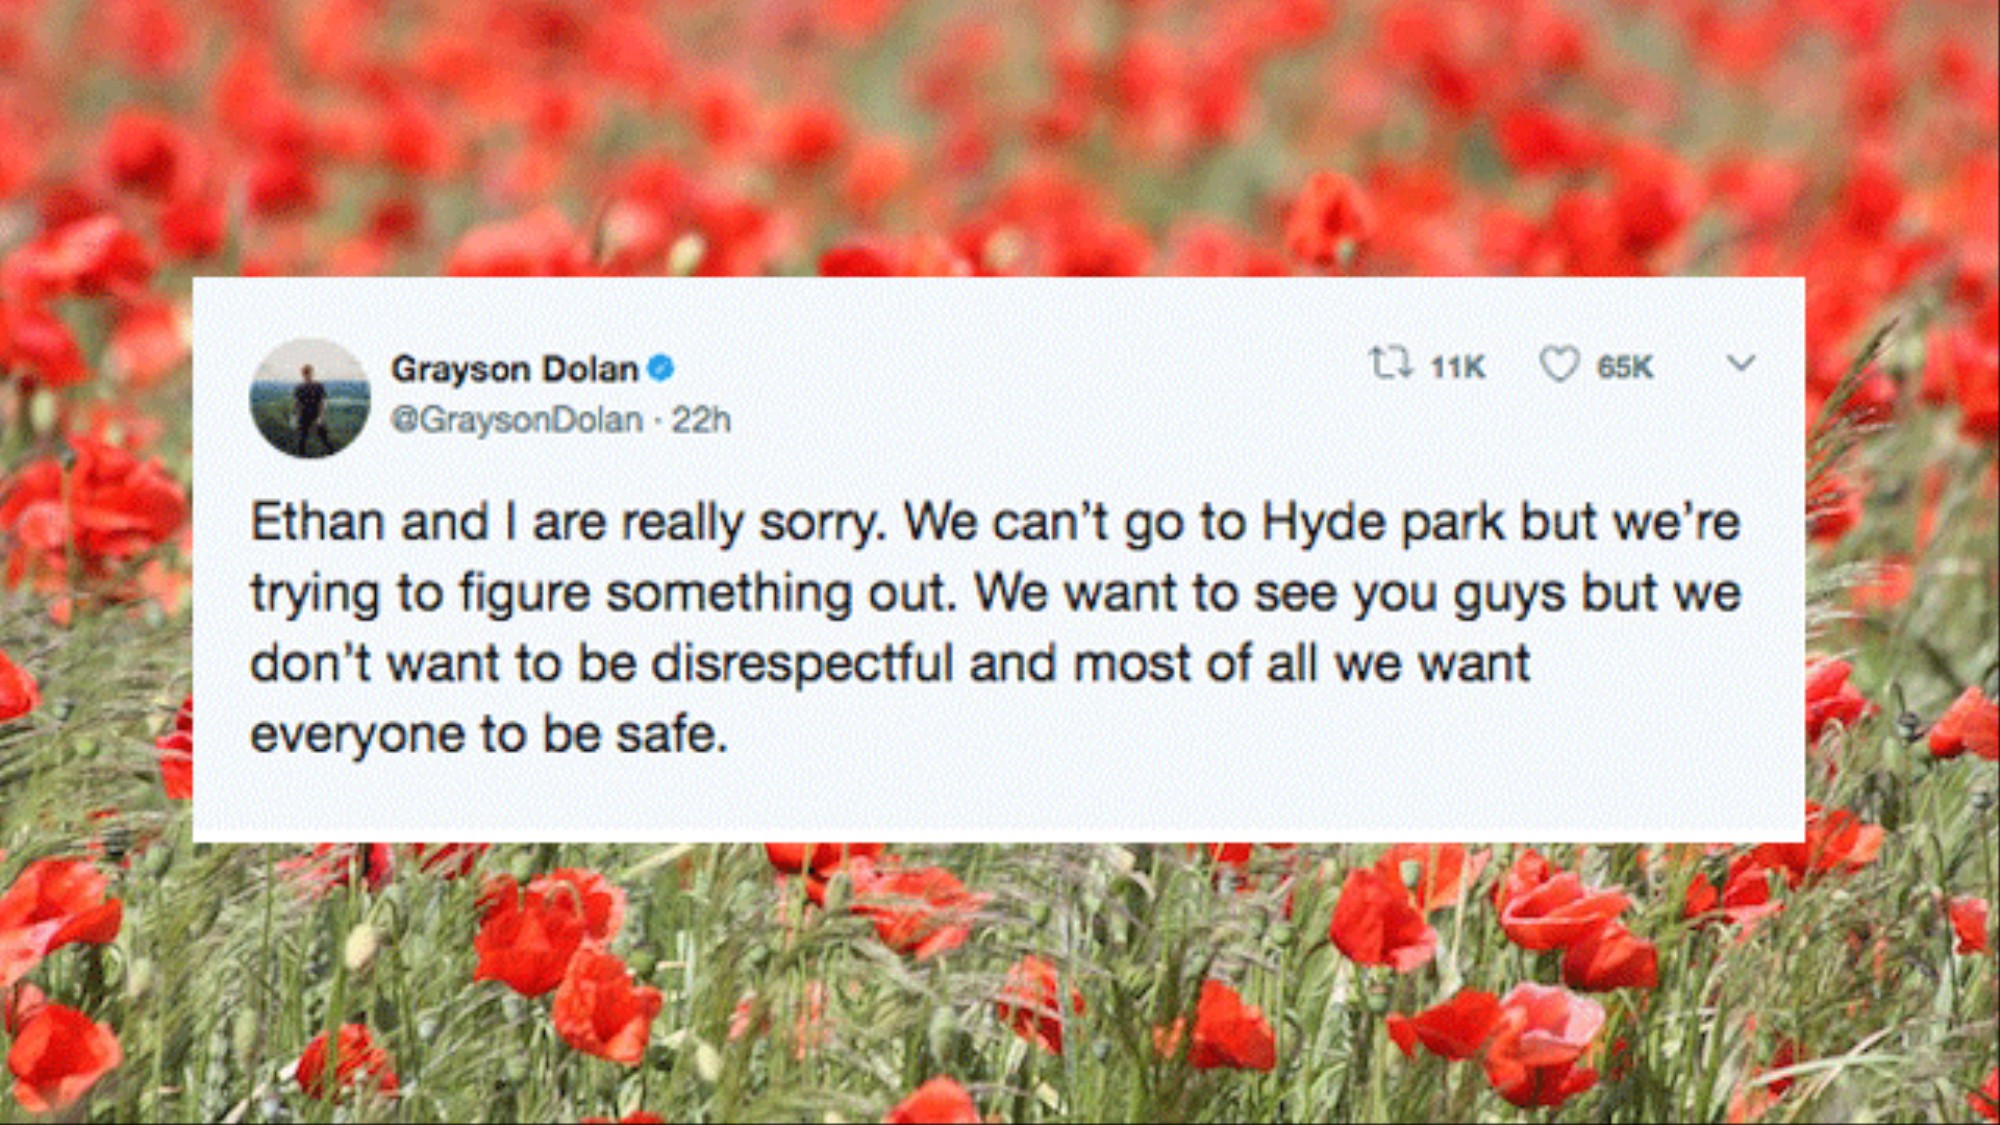 Five Questions About… The Dolan Twins' Hyde Park Respect